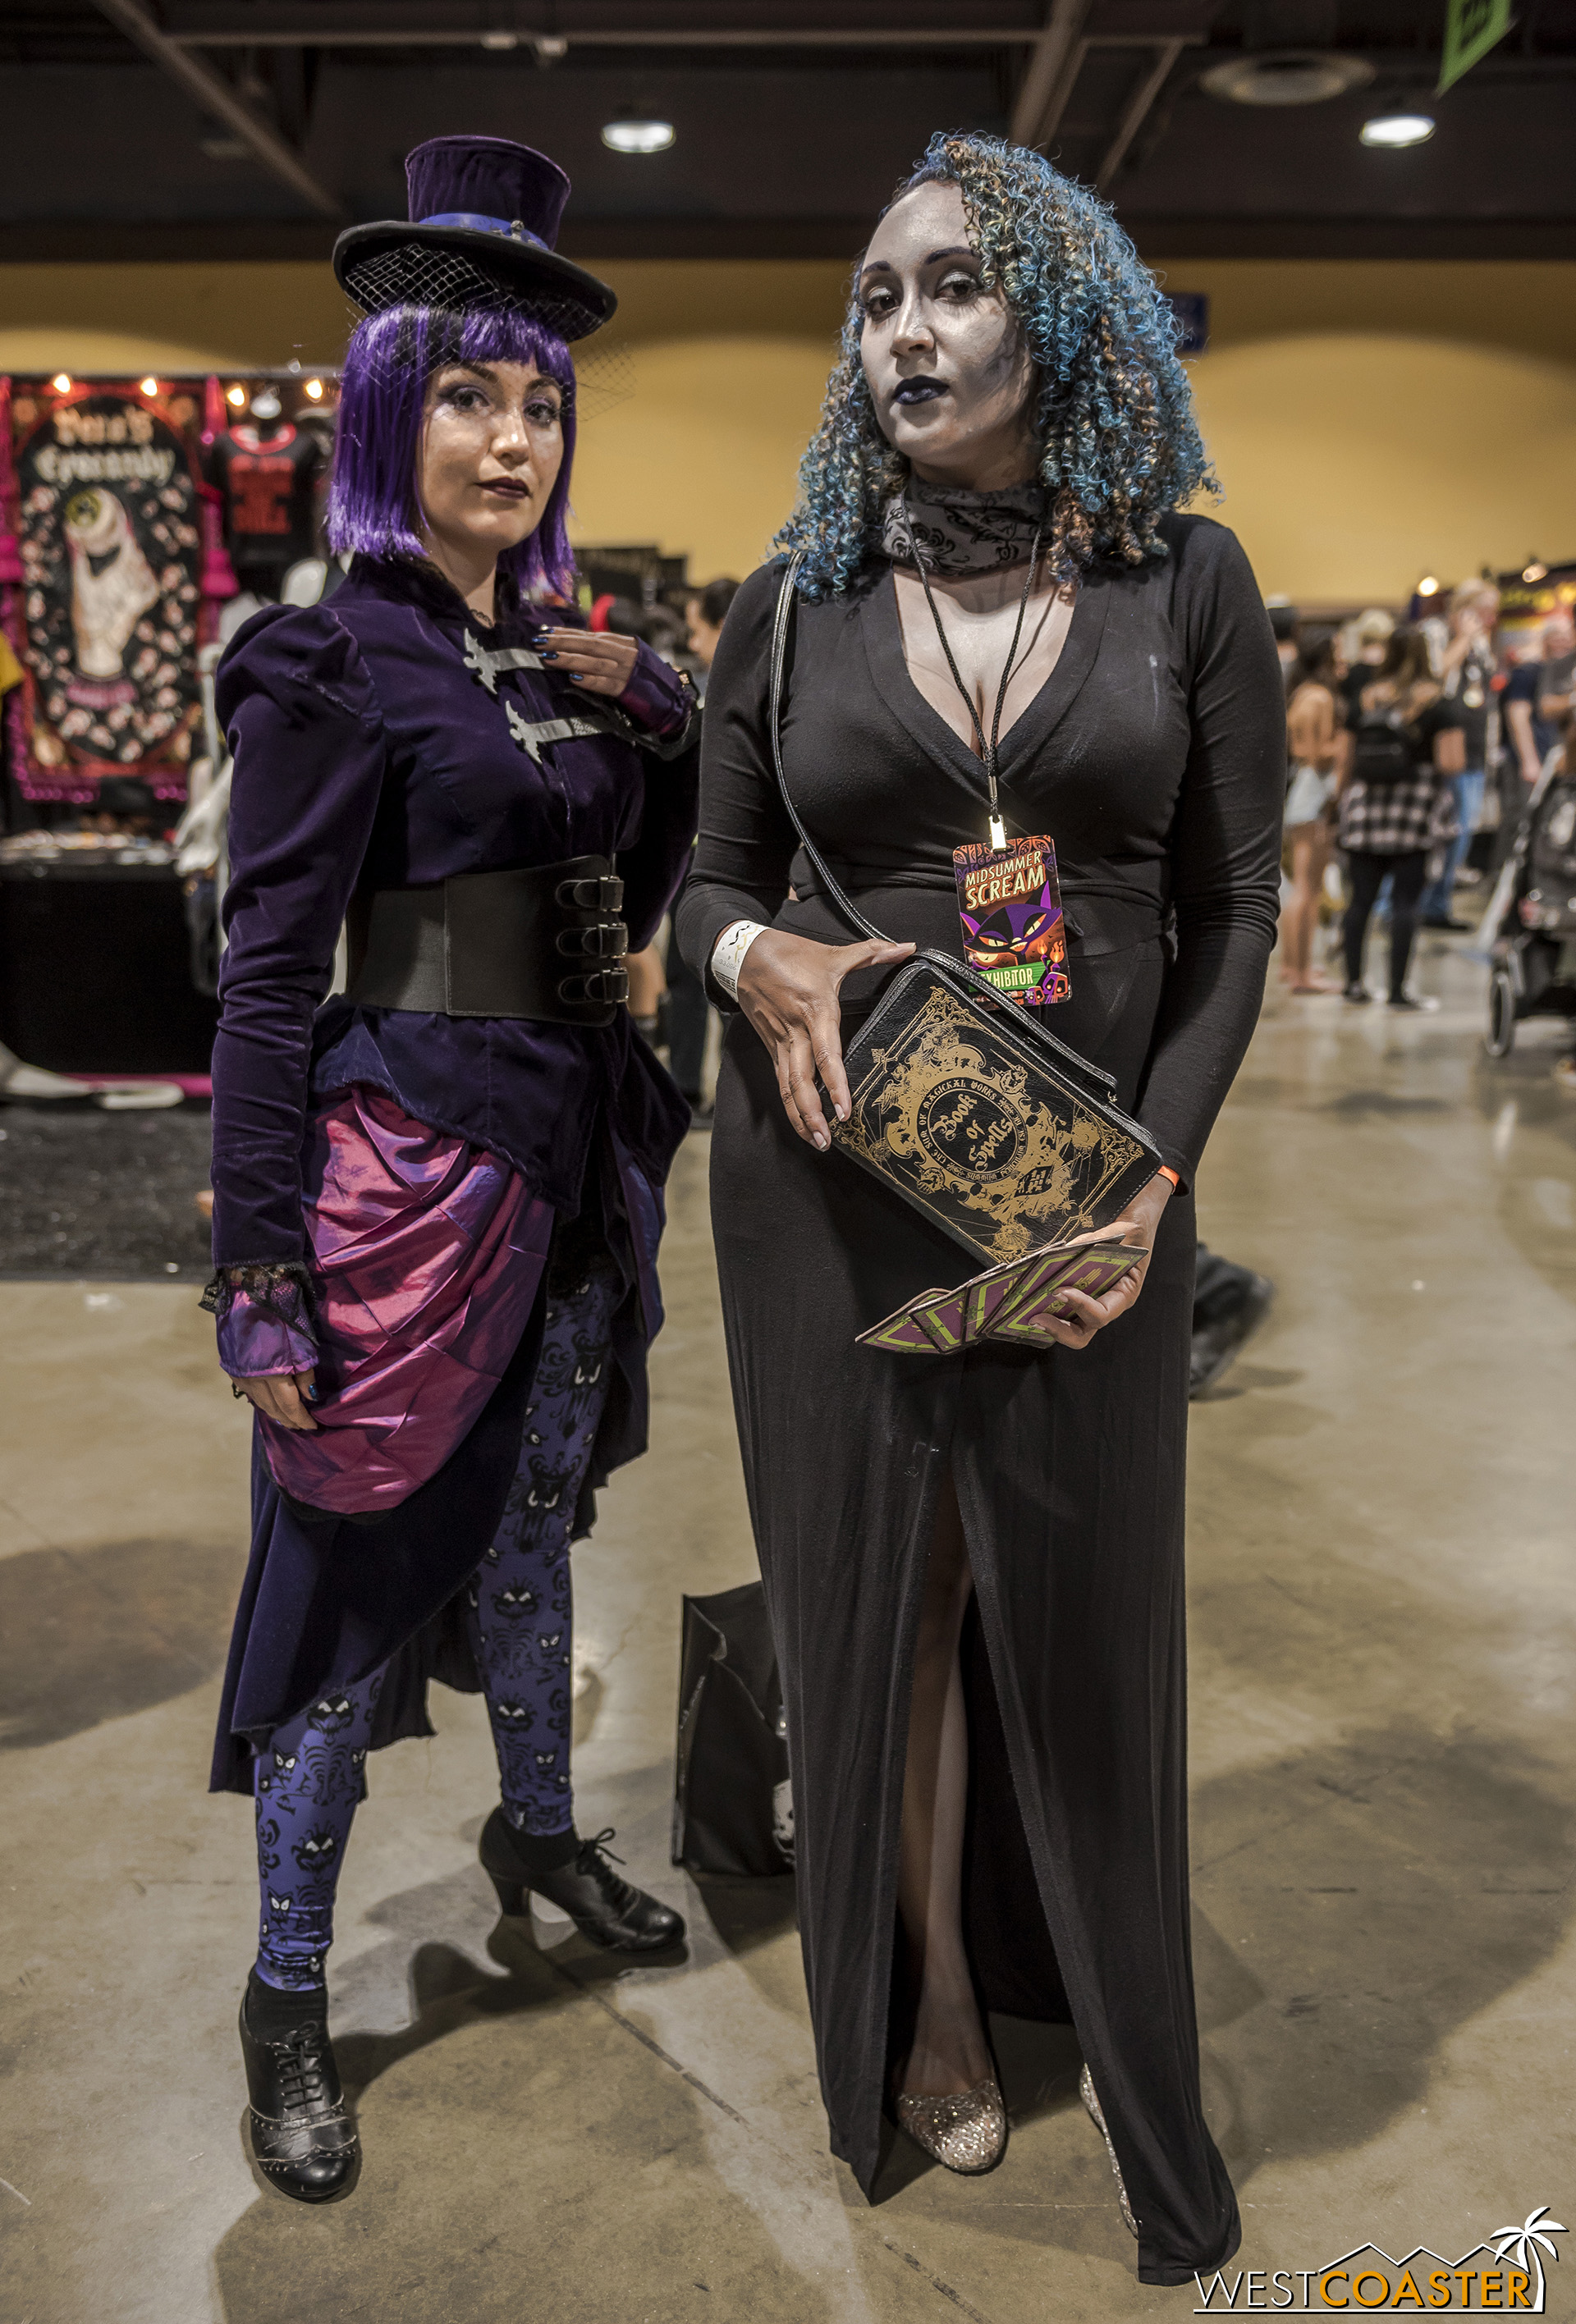 These two ladies paid tribute to the Haunted Mansion with their outfits.